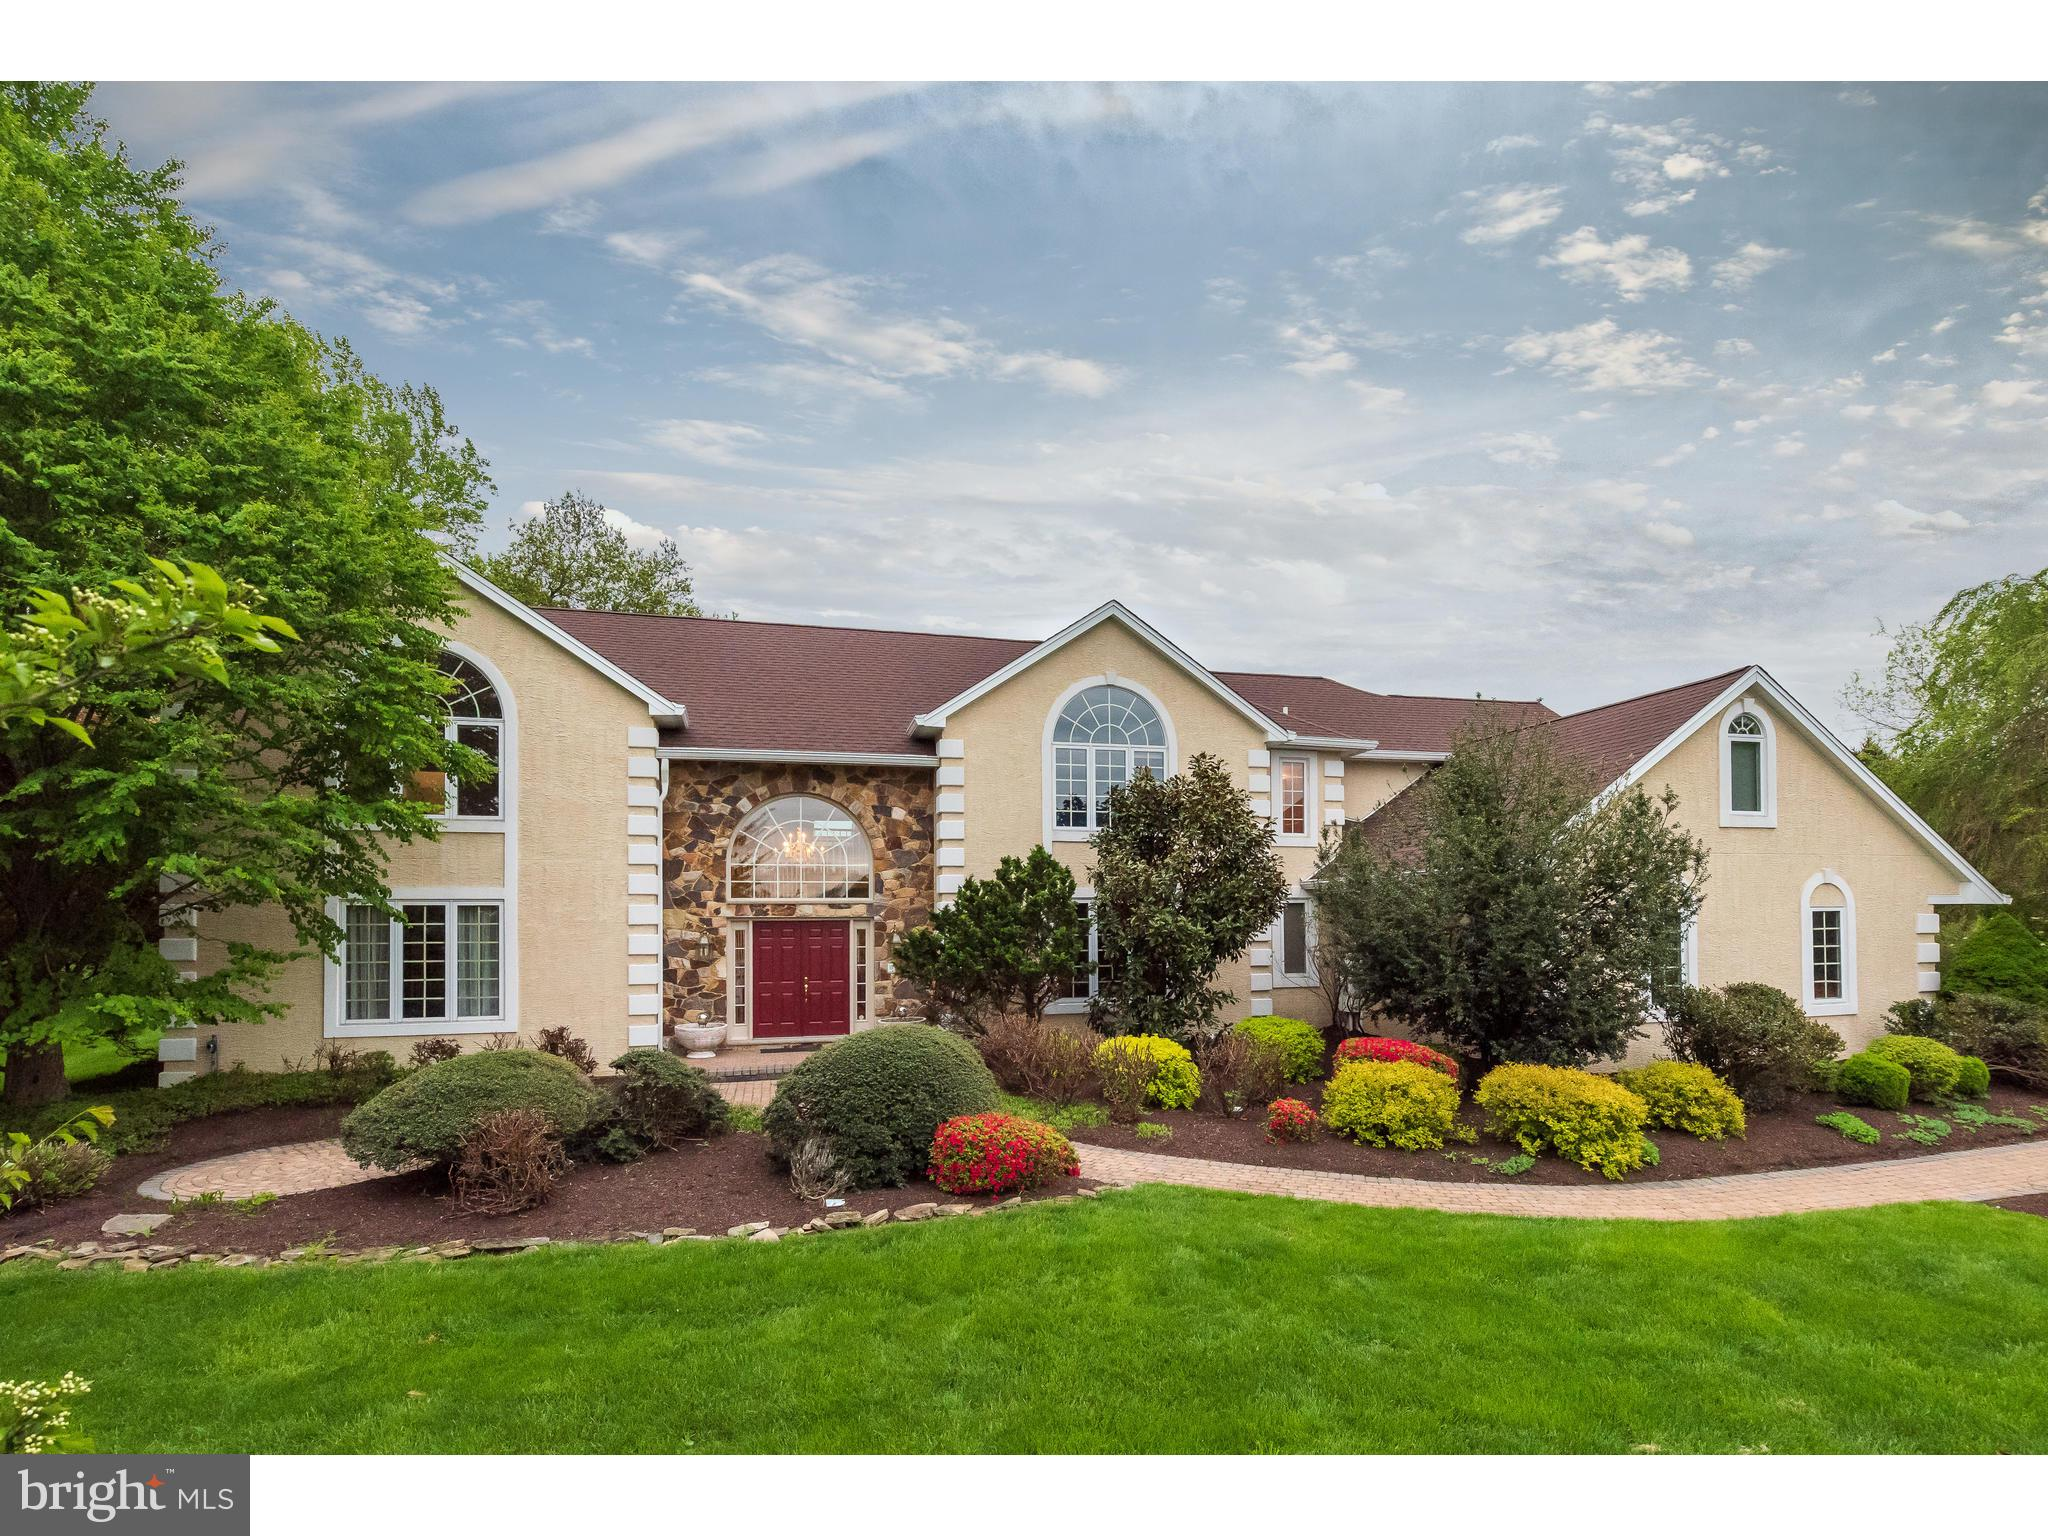 104 GIDEON DRIVE, KENNETT SQUARE, PA 19348